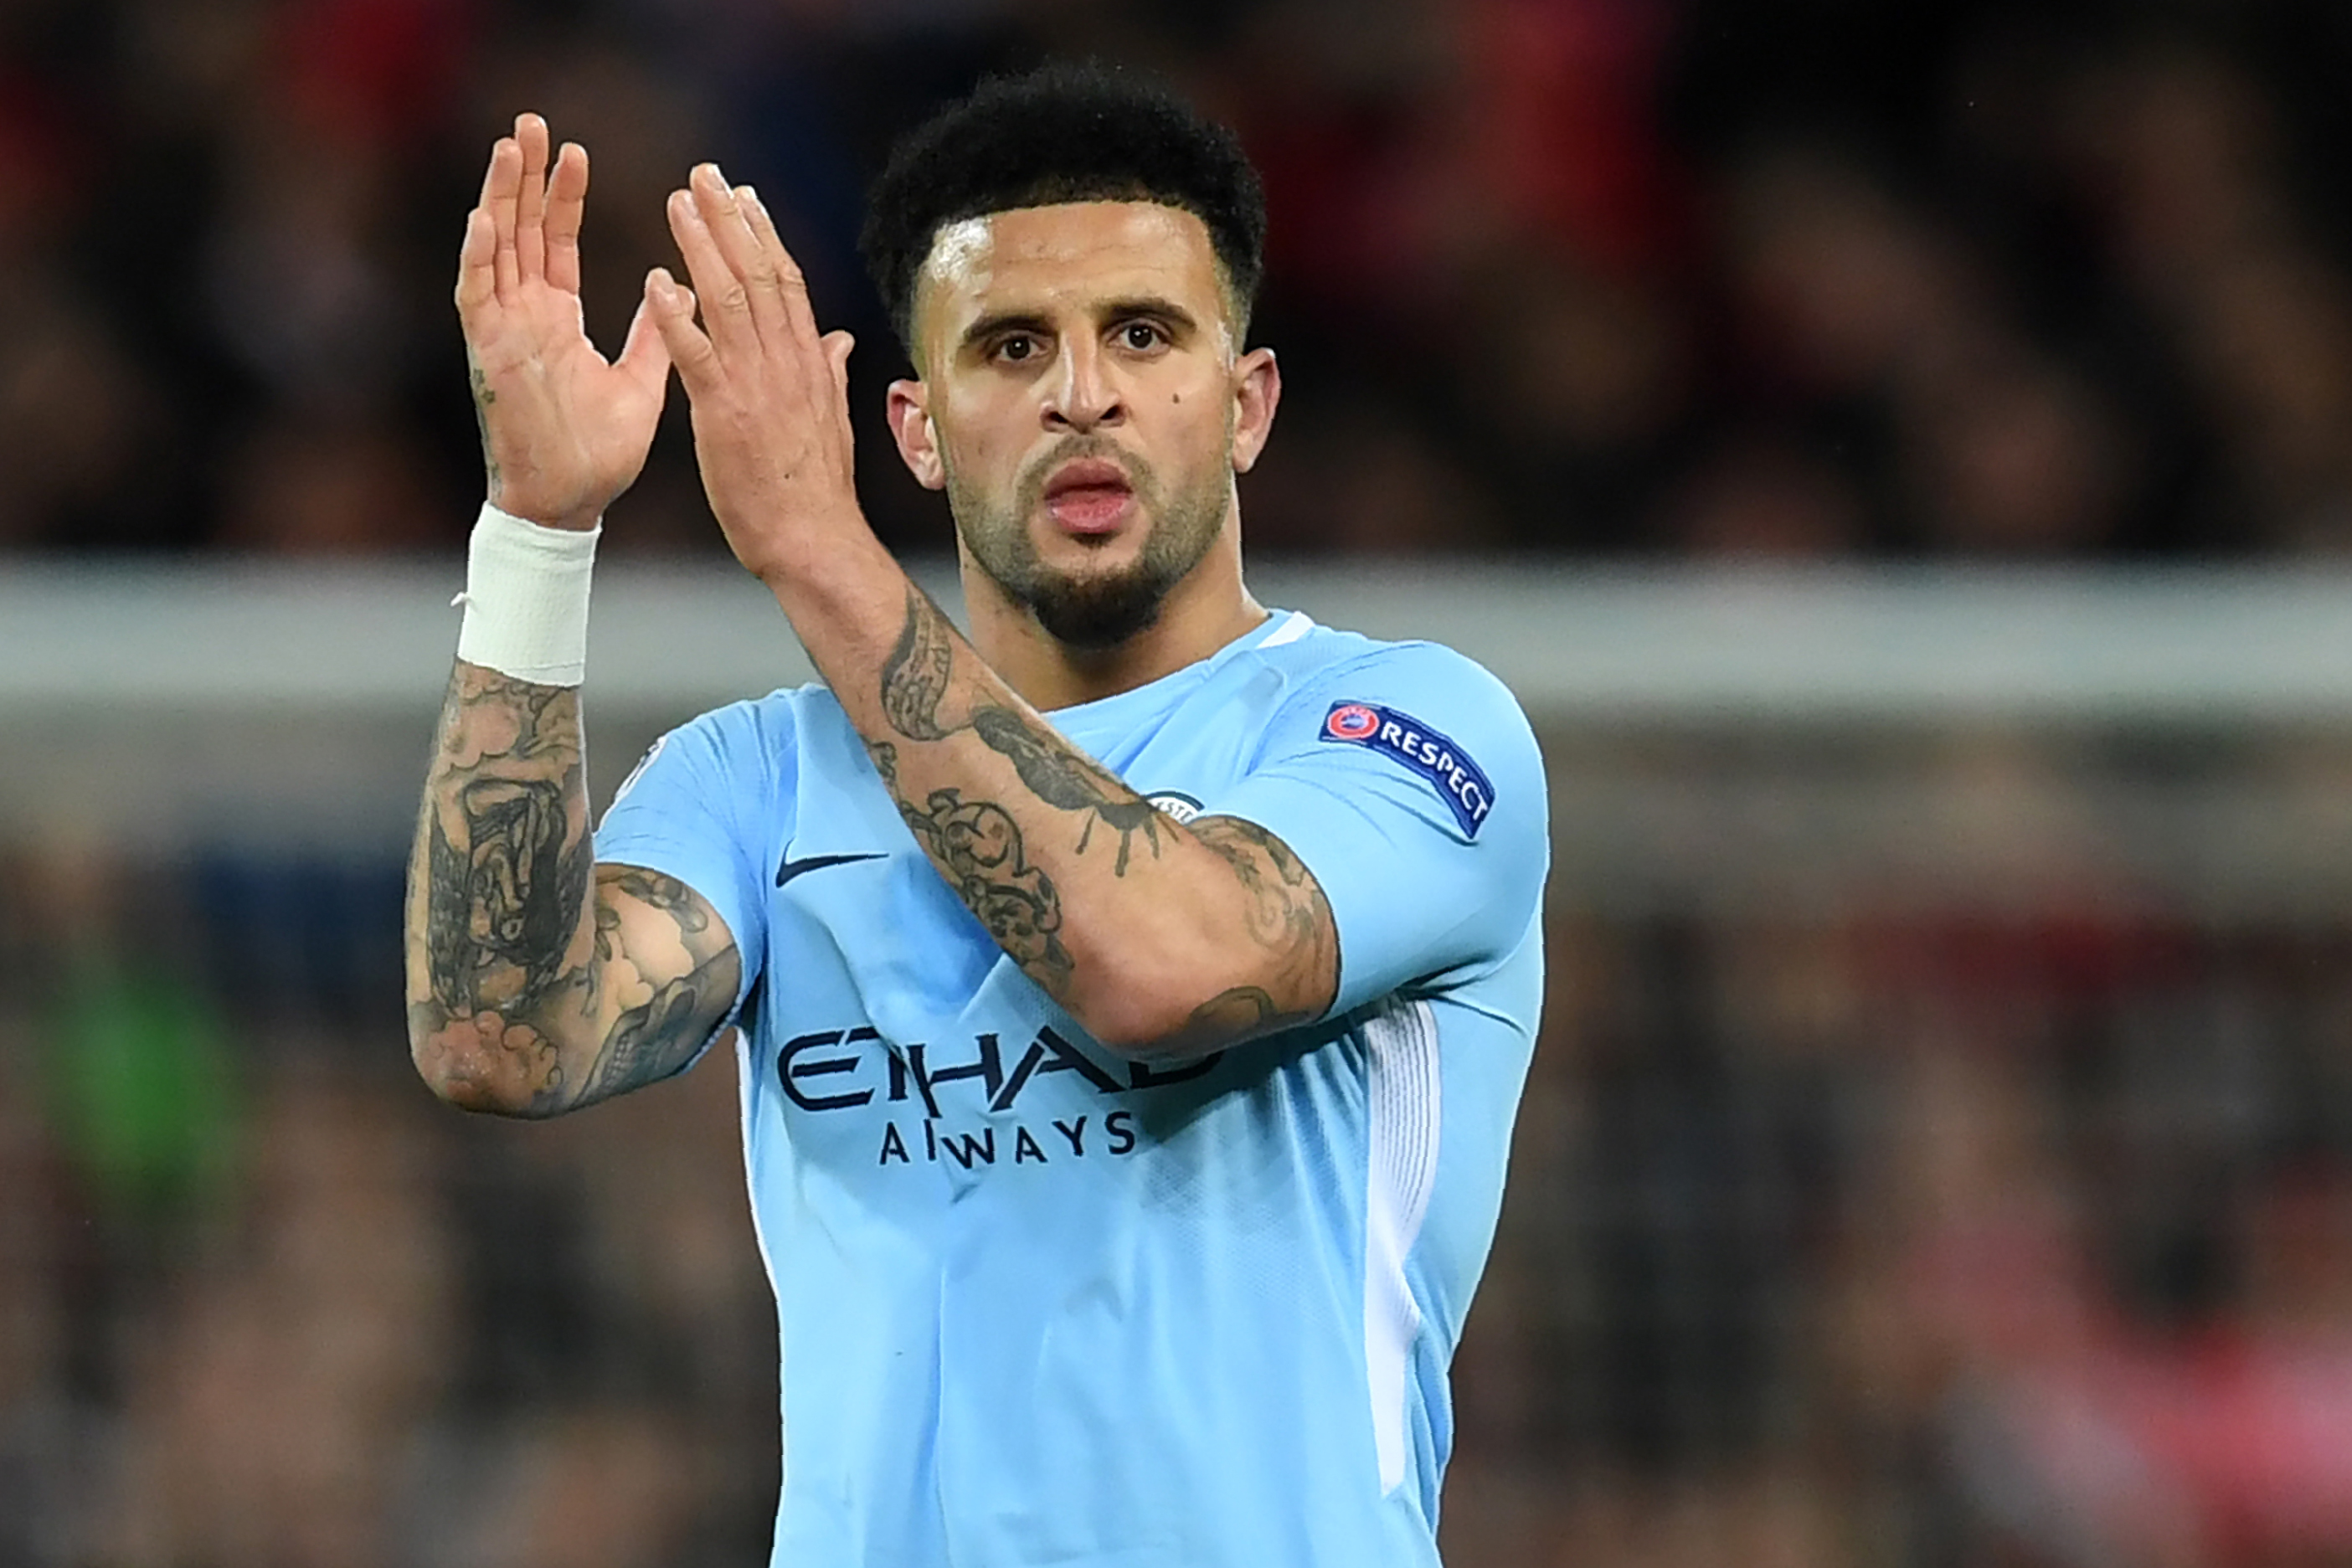 Footballer Kyle Walker sorry for hosting party 'with two sex workers' while urging fans to stay at home during coronavirus lockdown